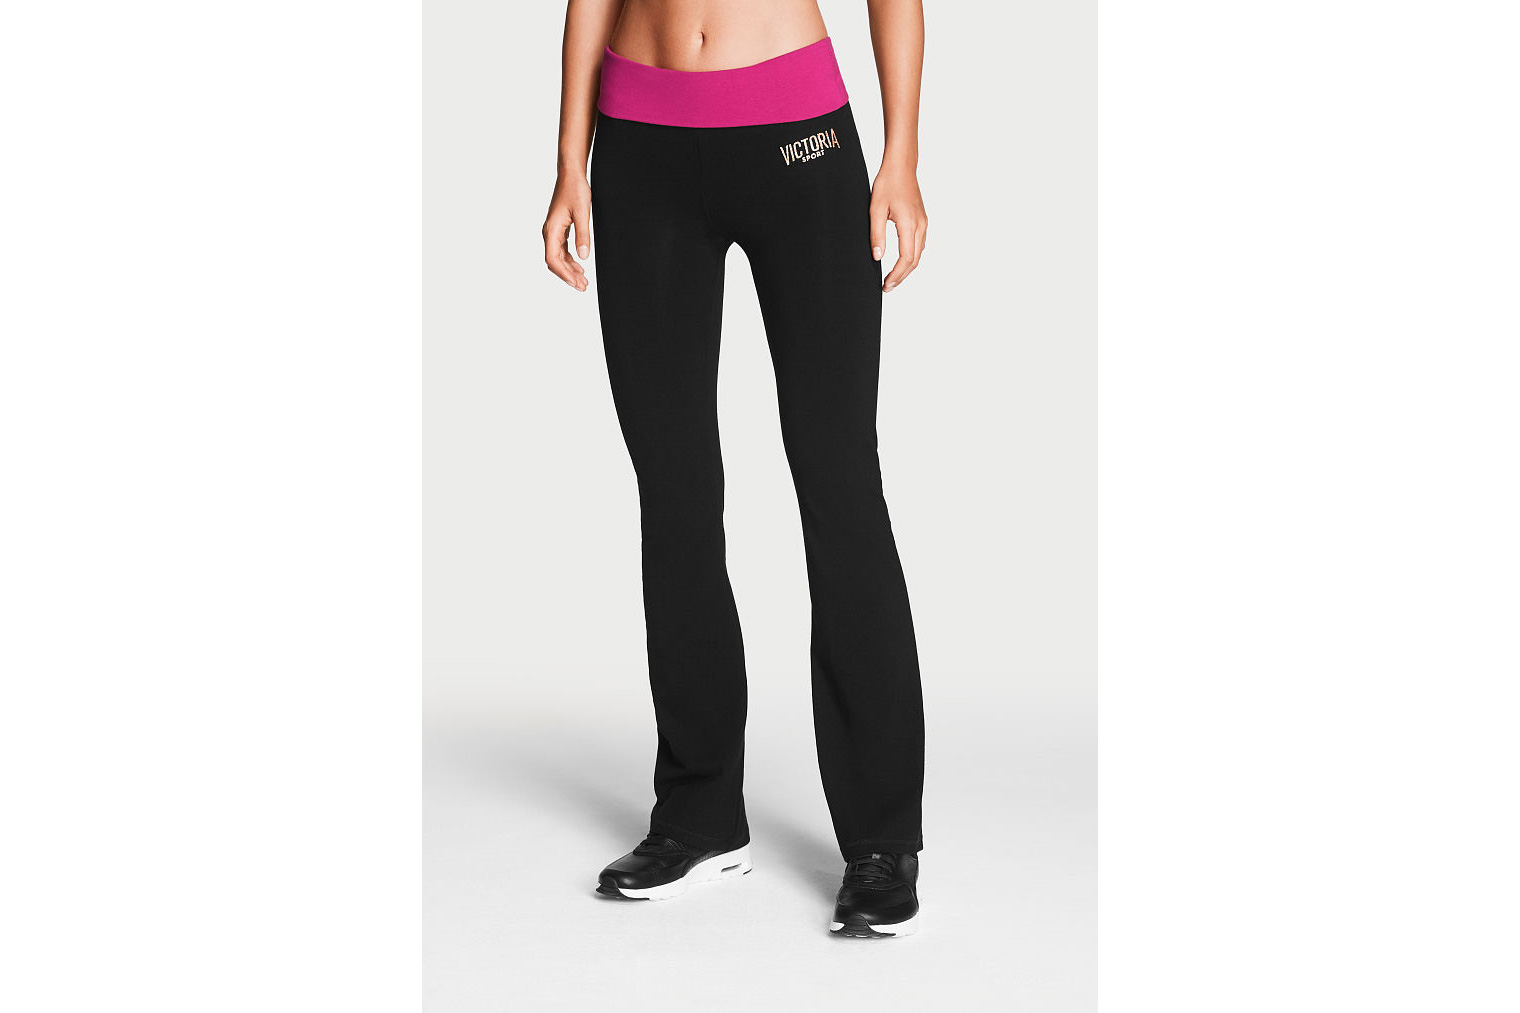 Victoria Secret The Most-Loved Yoga Pant